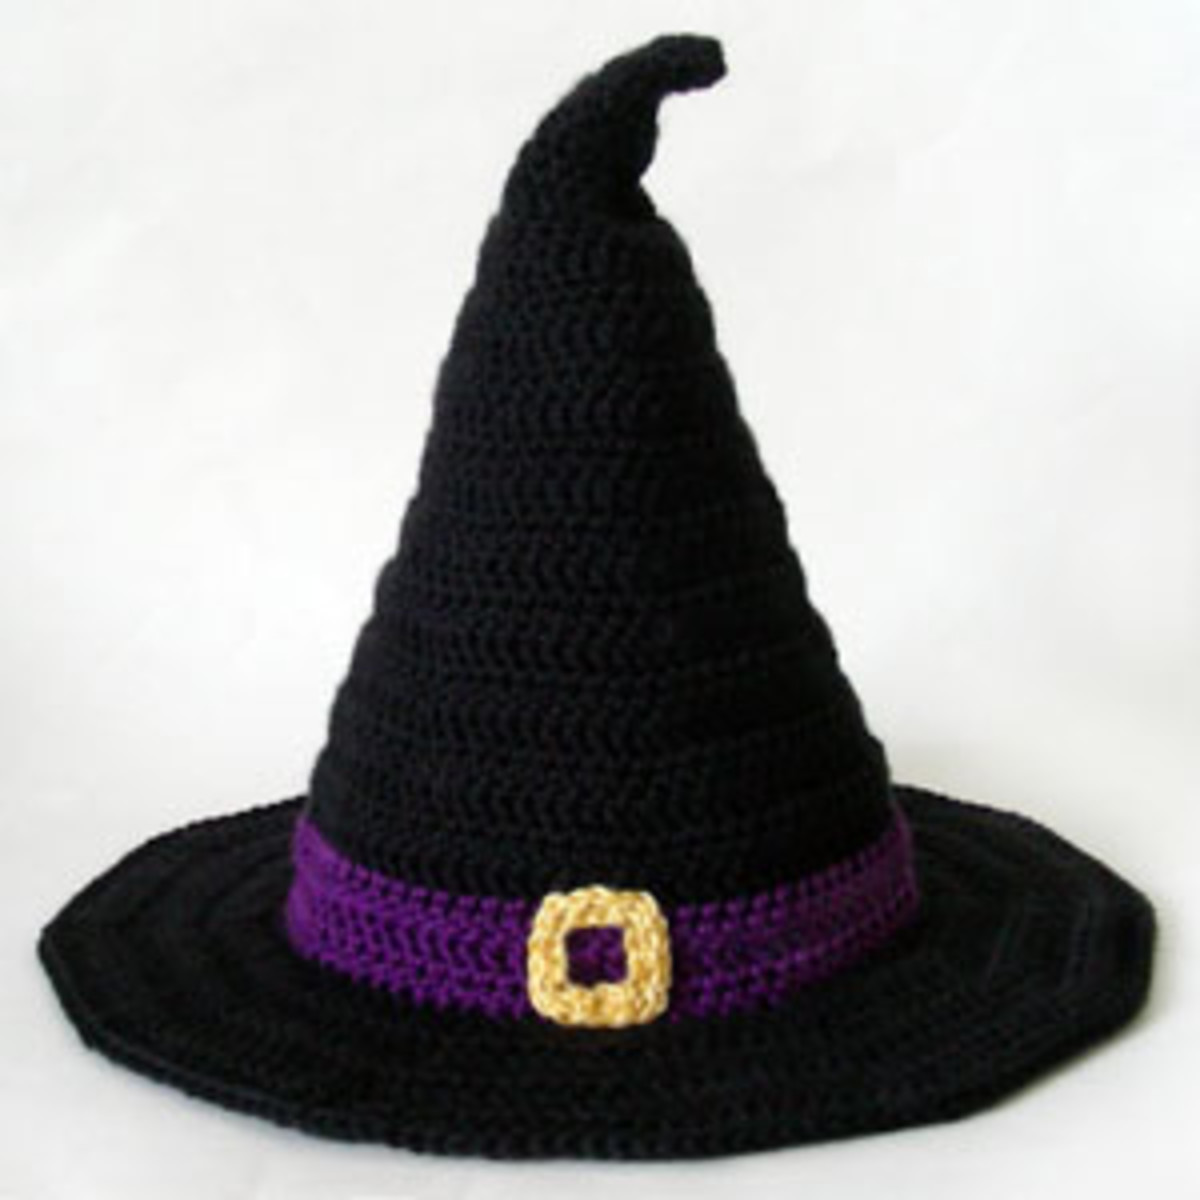 crochet this witch hat to top off your Halloween costume or to play dress up around the house.